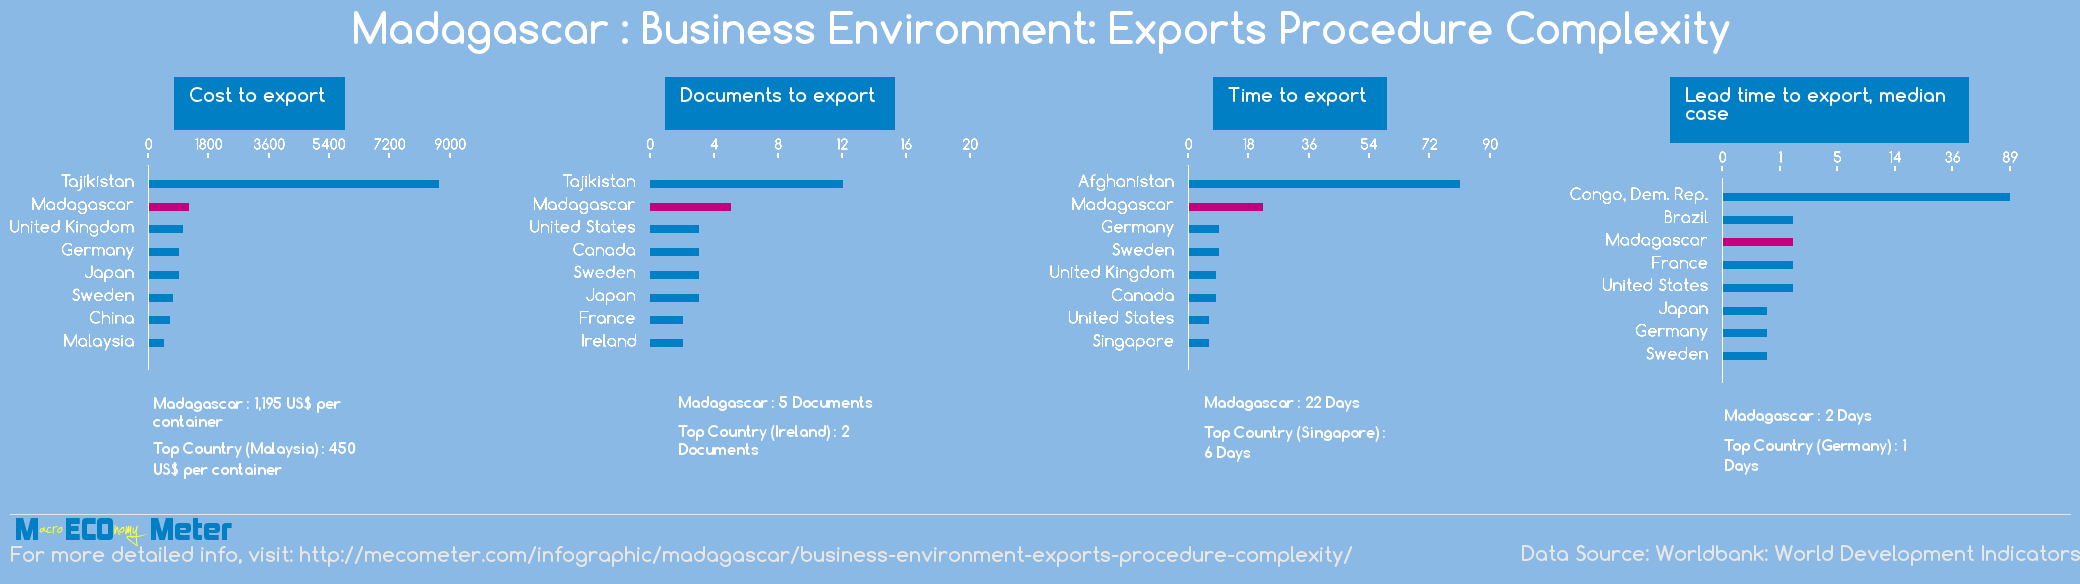 Madagascar : Business Environment: Exports Procedure Complexity